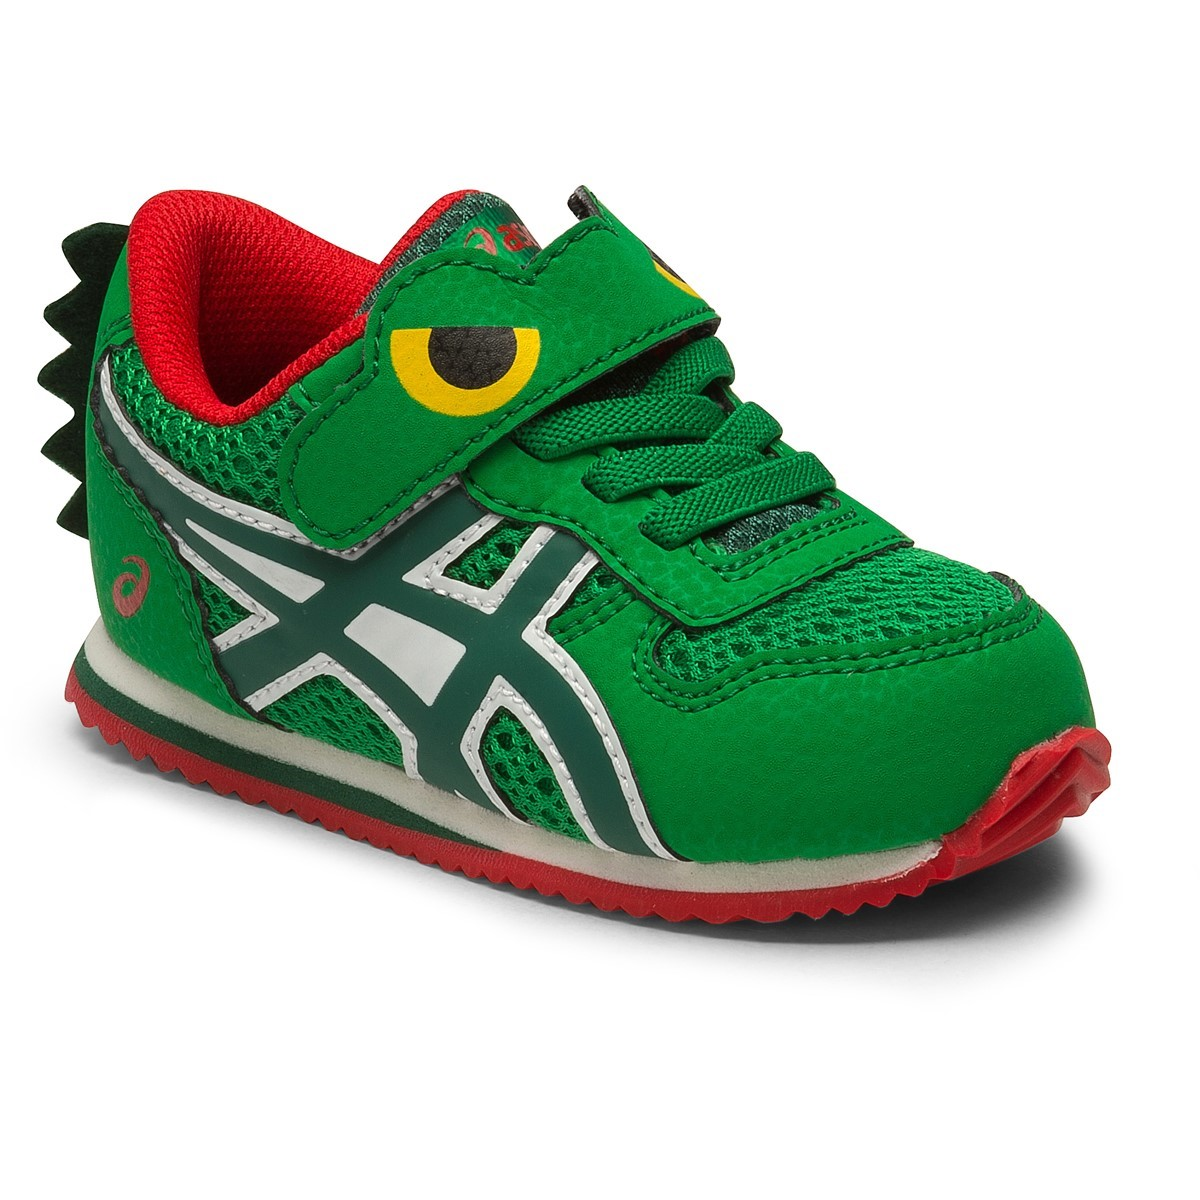 Asics Animal Pack - Toddler Boys Running Shoes - Crocodile ...